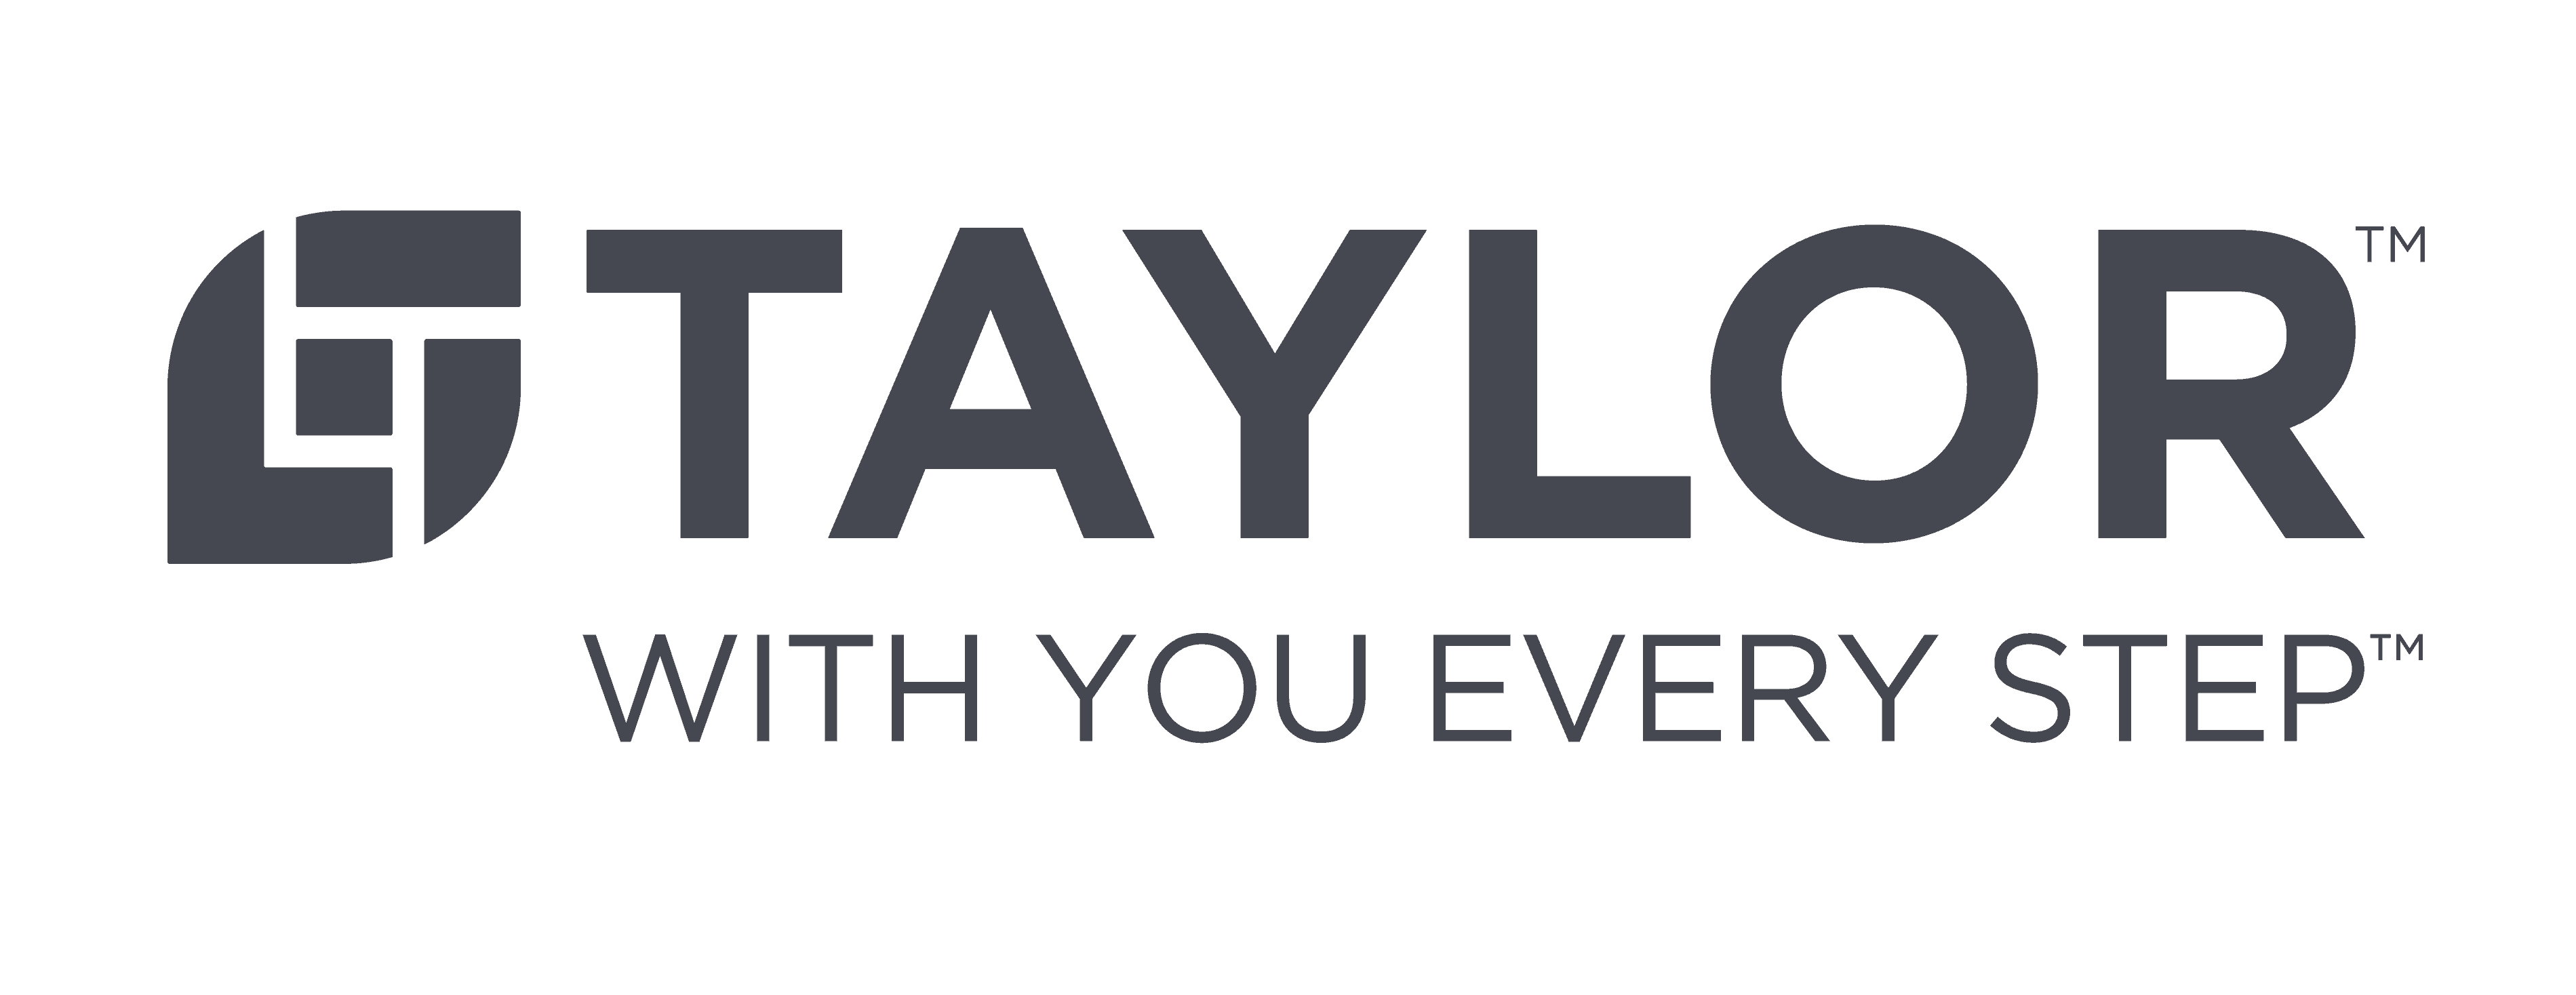 TAYLOR_LOGO_GRAY_WITH_TAGLINE-01-01 (1)